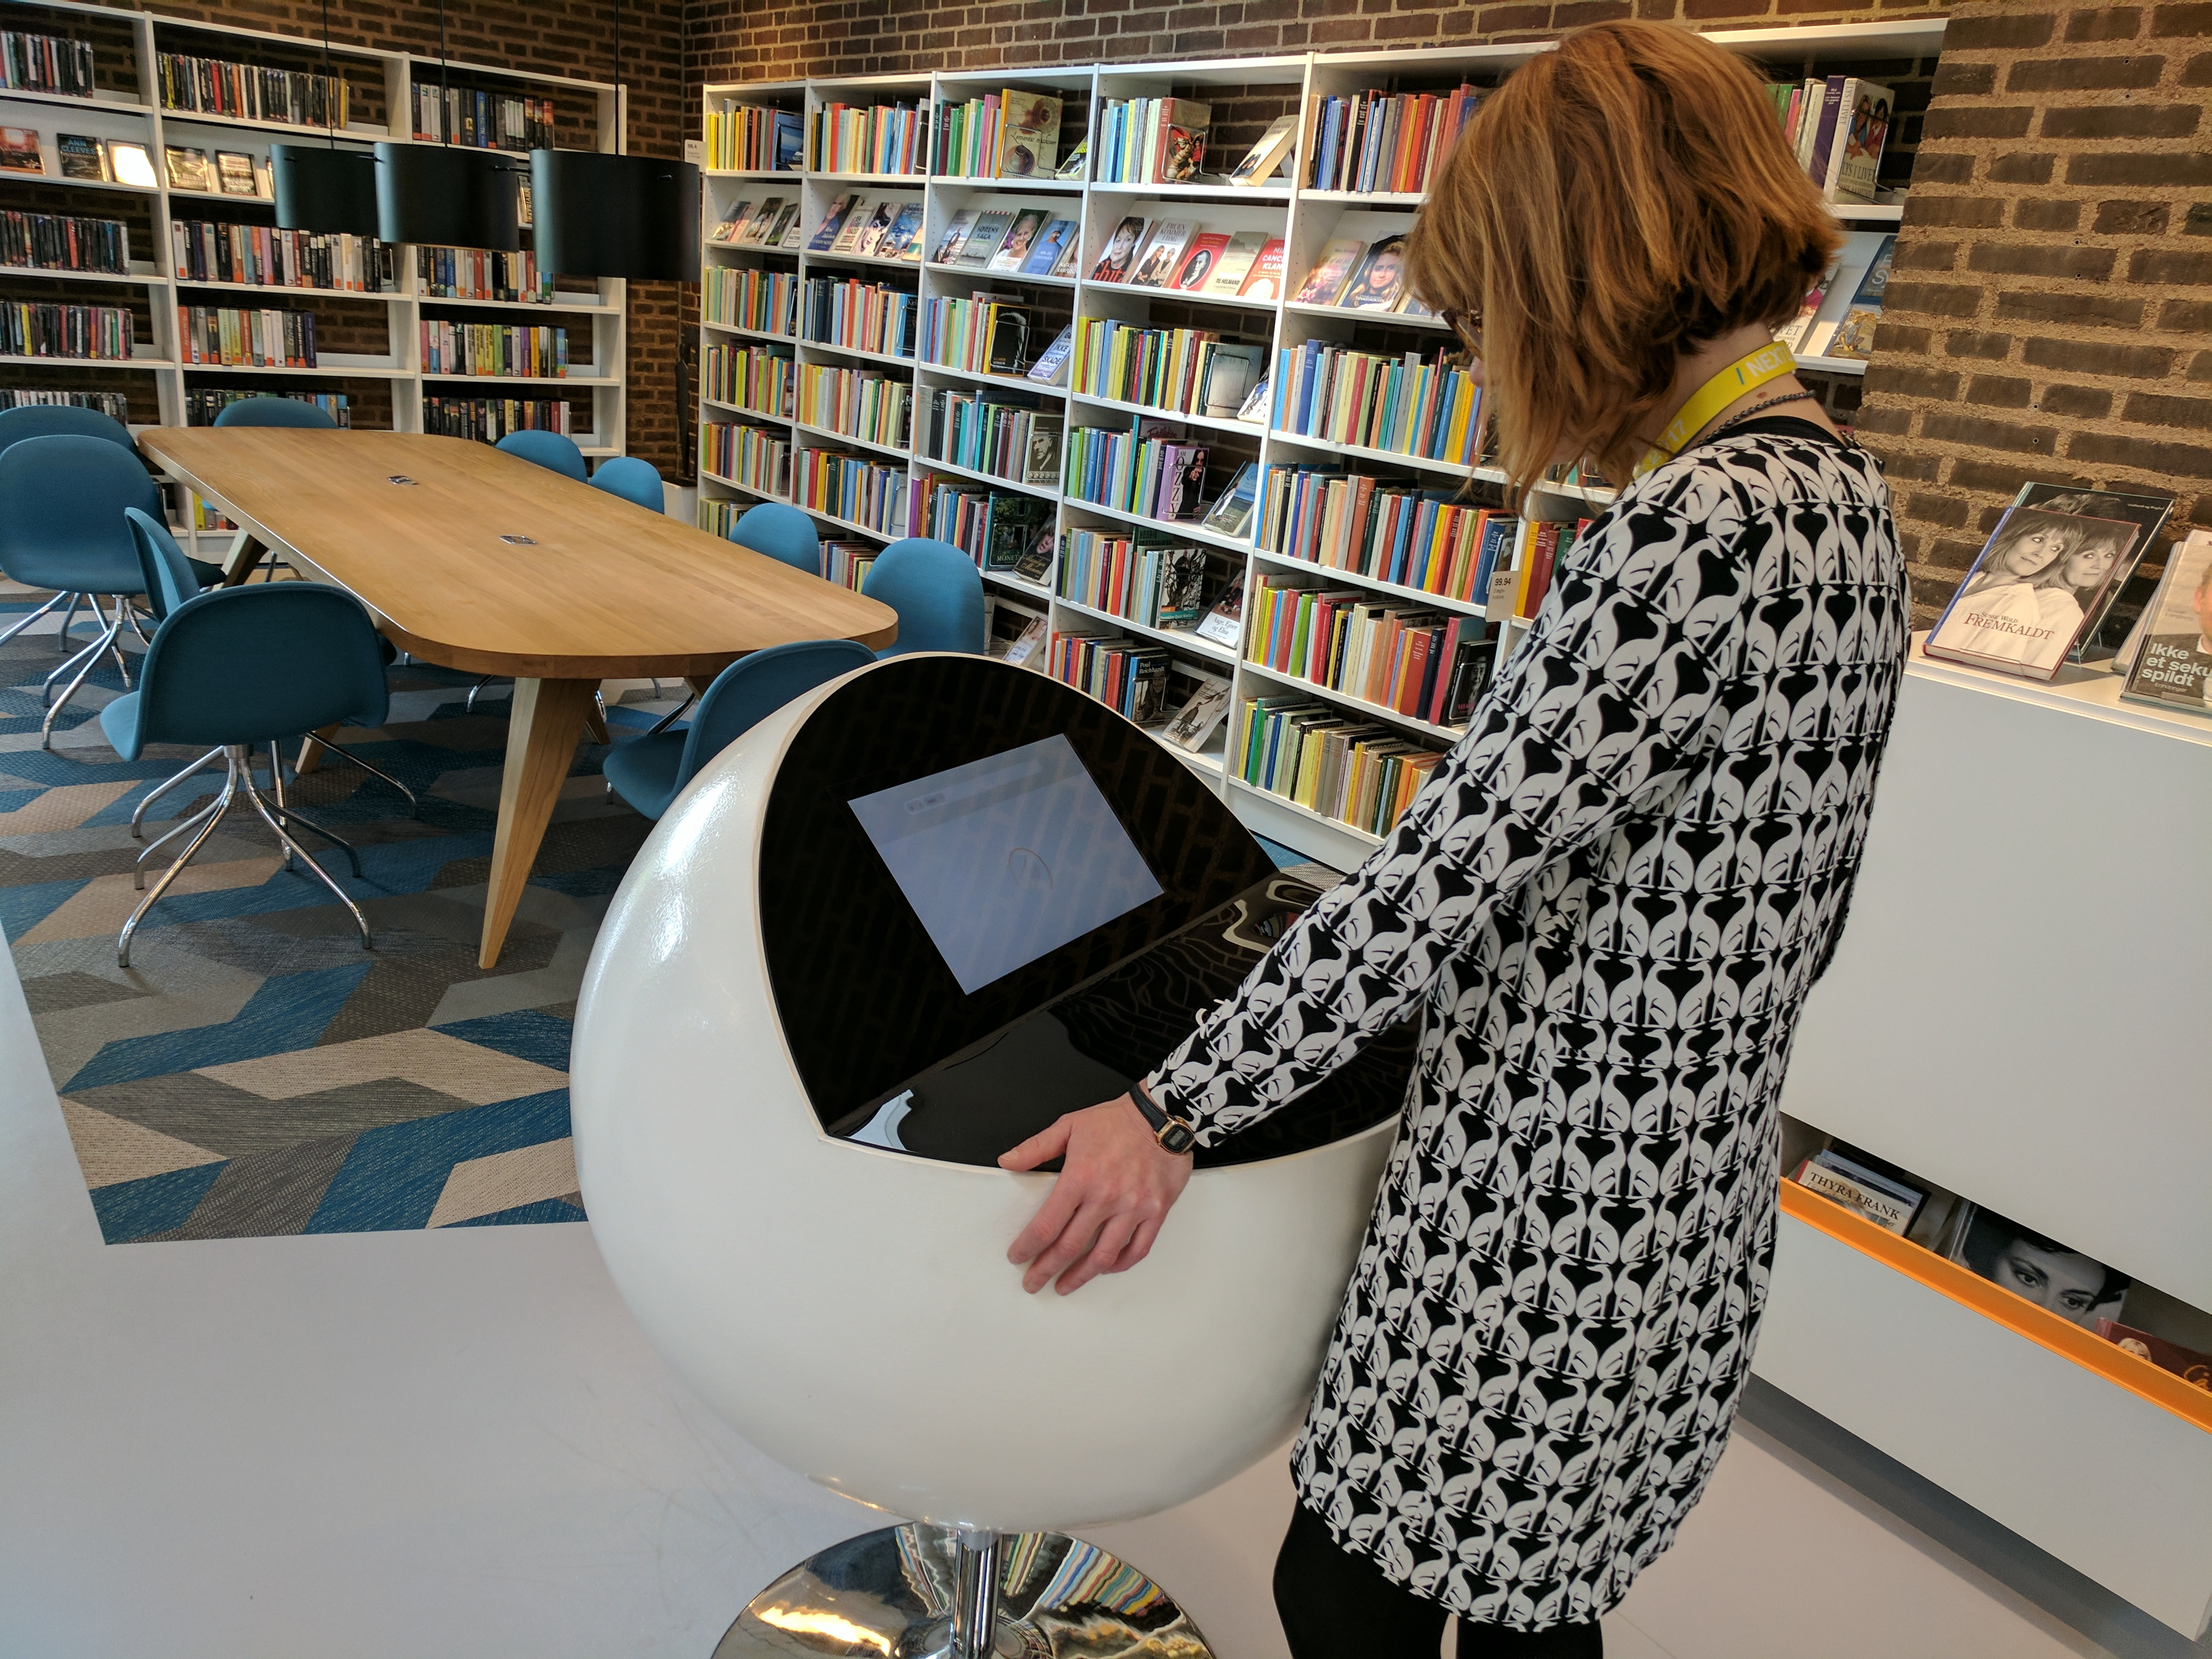 Five lessons for libraries looking to innovate in the 21st Century